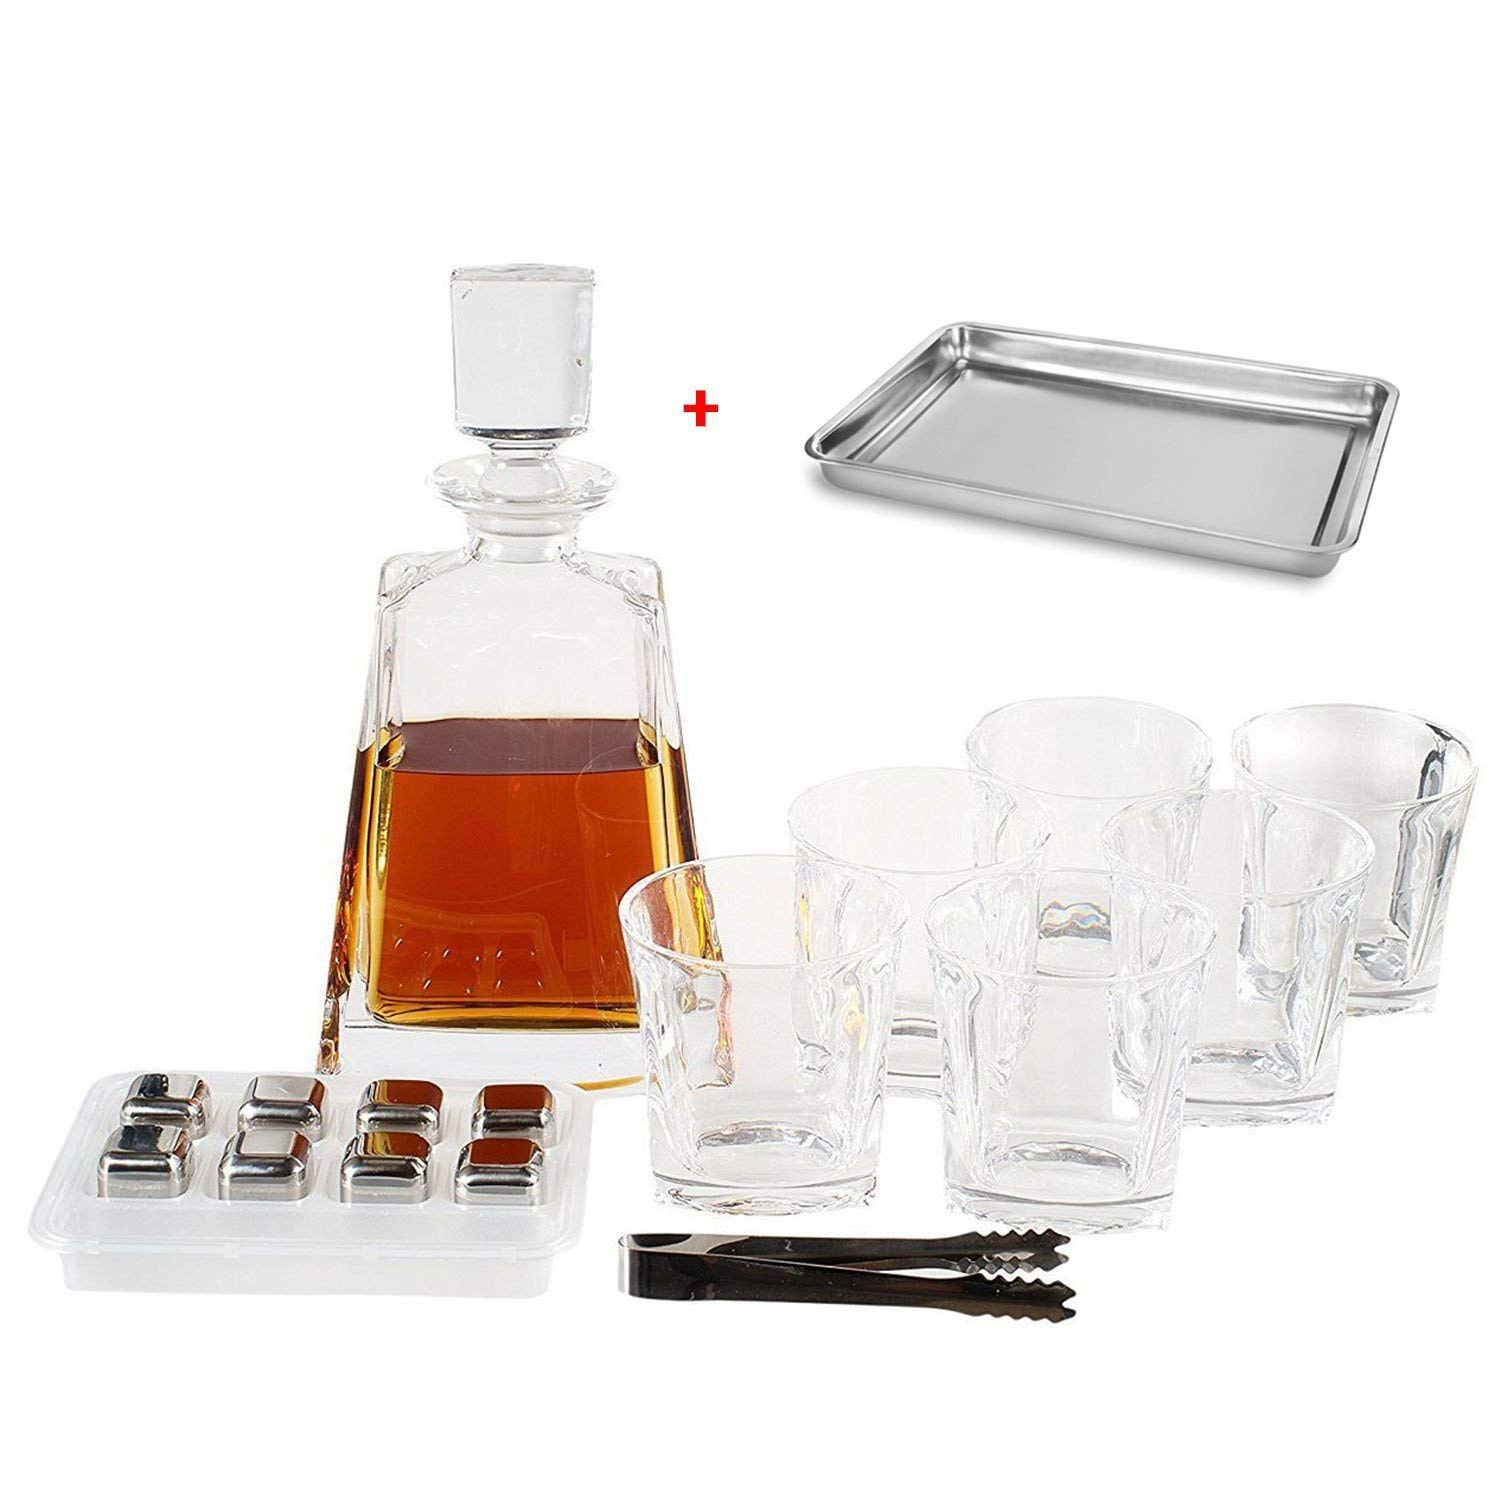 Whiskey Decanter Set by Opul (10 Piece Set) - Includes Crystal Whiskey Glasses Set, Whiskey Stones, Stainless Steel Tray and Tongs - Elegantly Designed to Last the Test of Time by OPUL (Image #1)